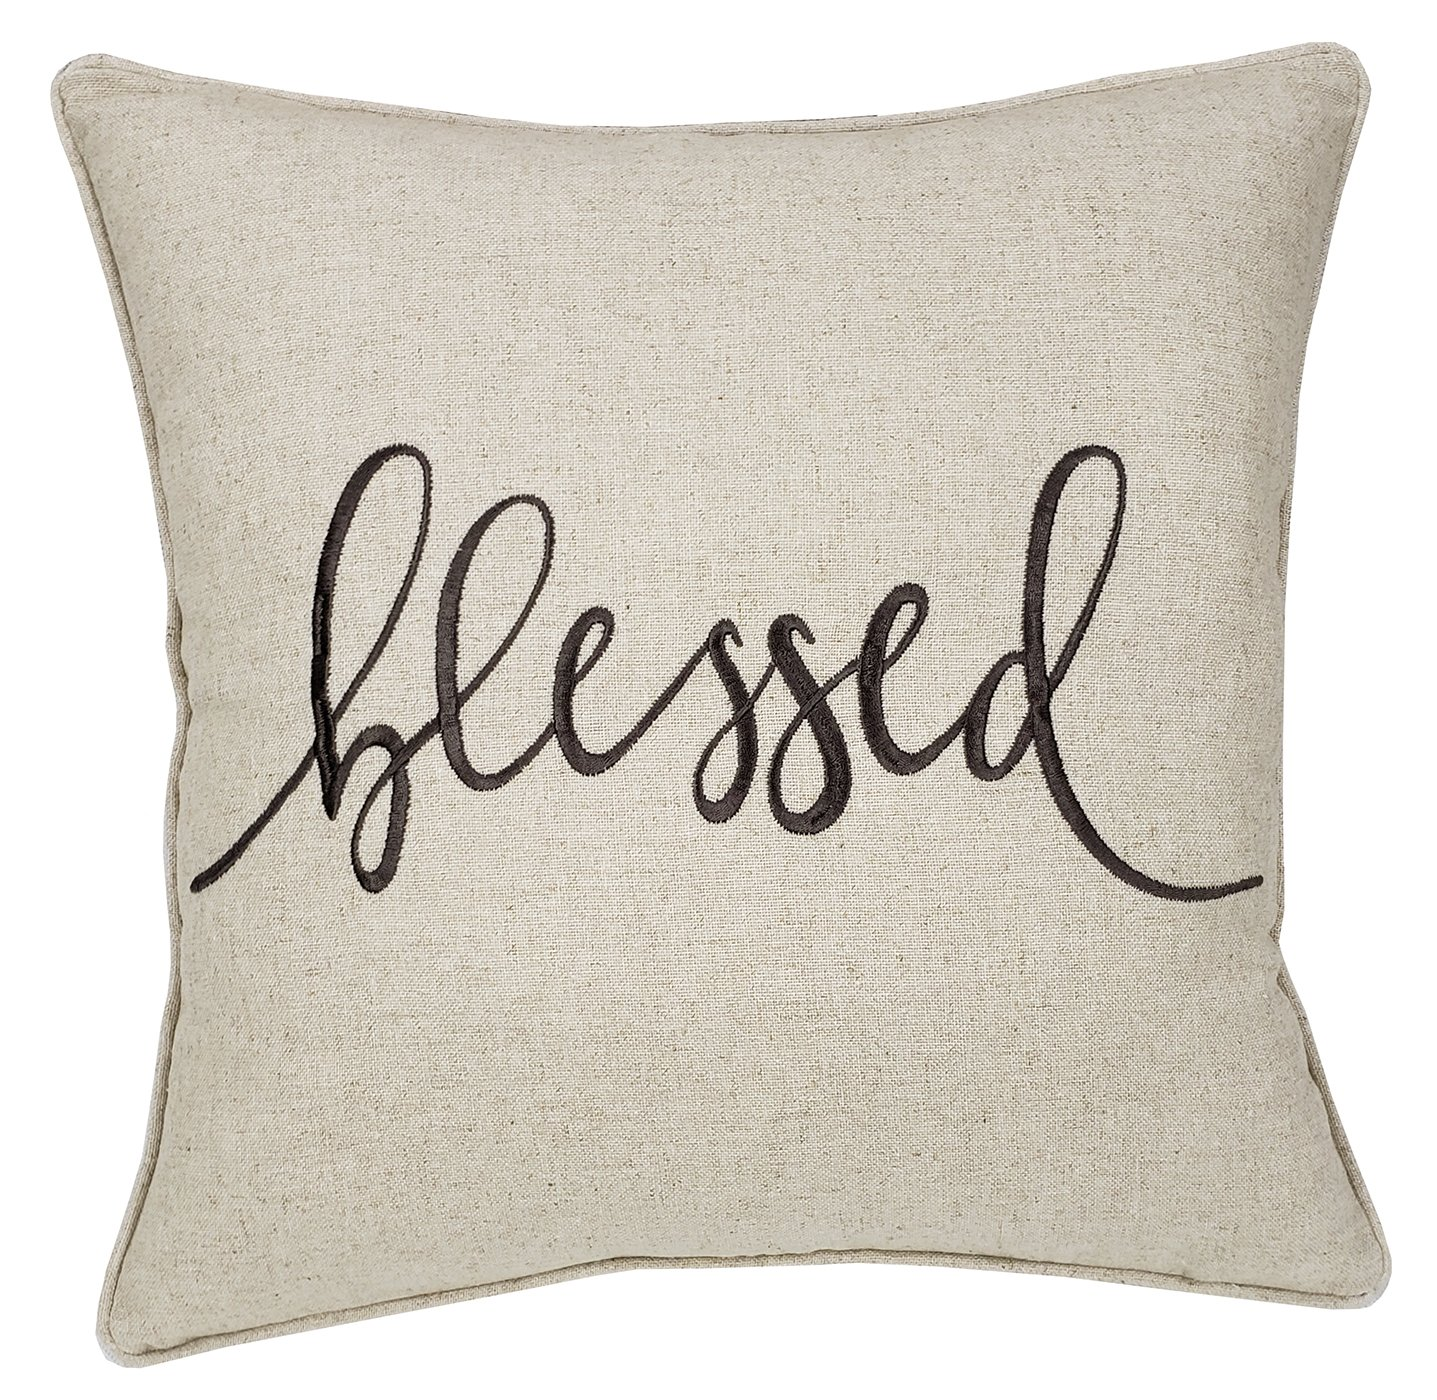 Trivenee Tex Pillowcase Embroidered Blessed Thankful Grateful Decorative Lumbar Throw Pillow Cover Gift for Christmas New Home Farmhouse Home Decor (Blessed(Natural), 18''X18'')